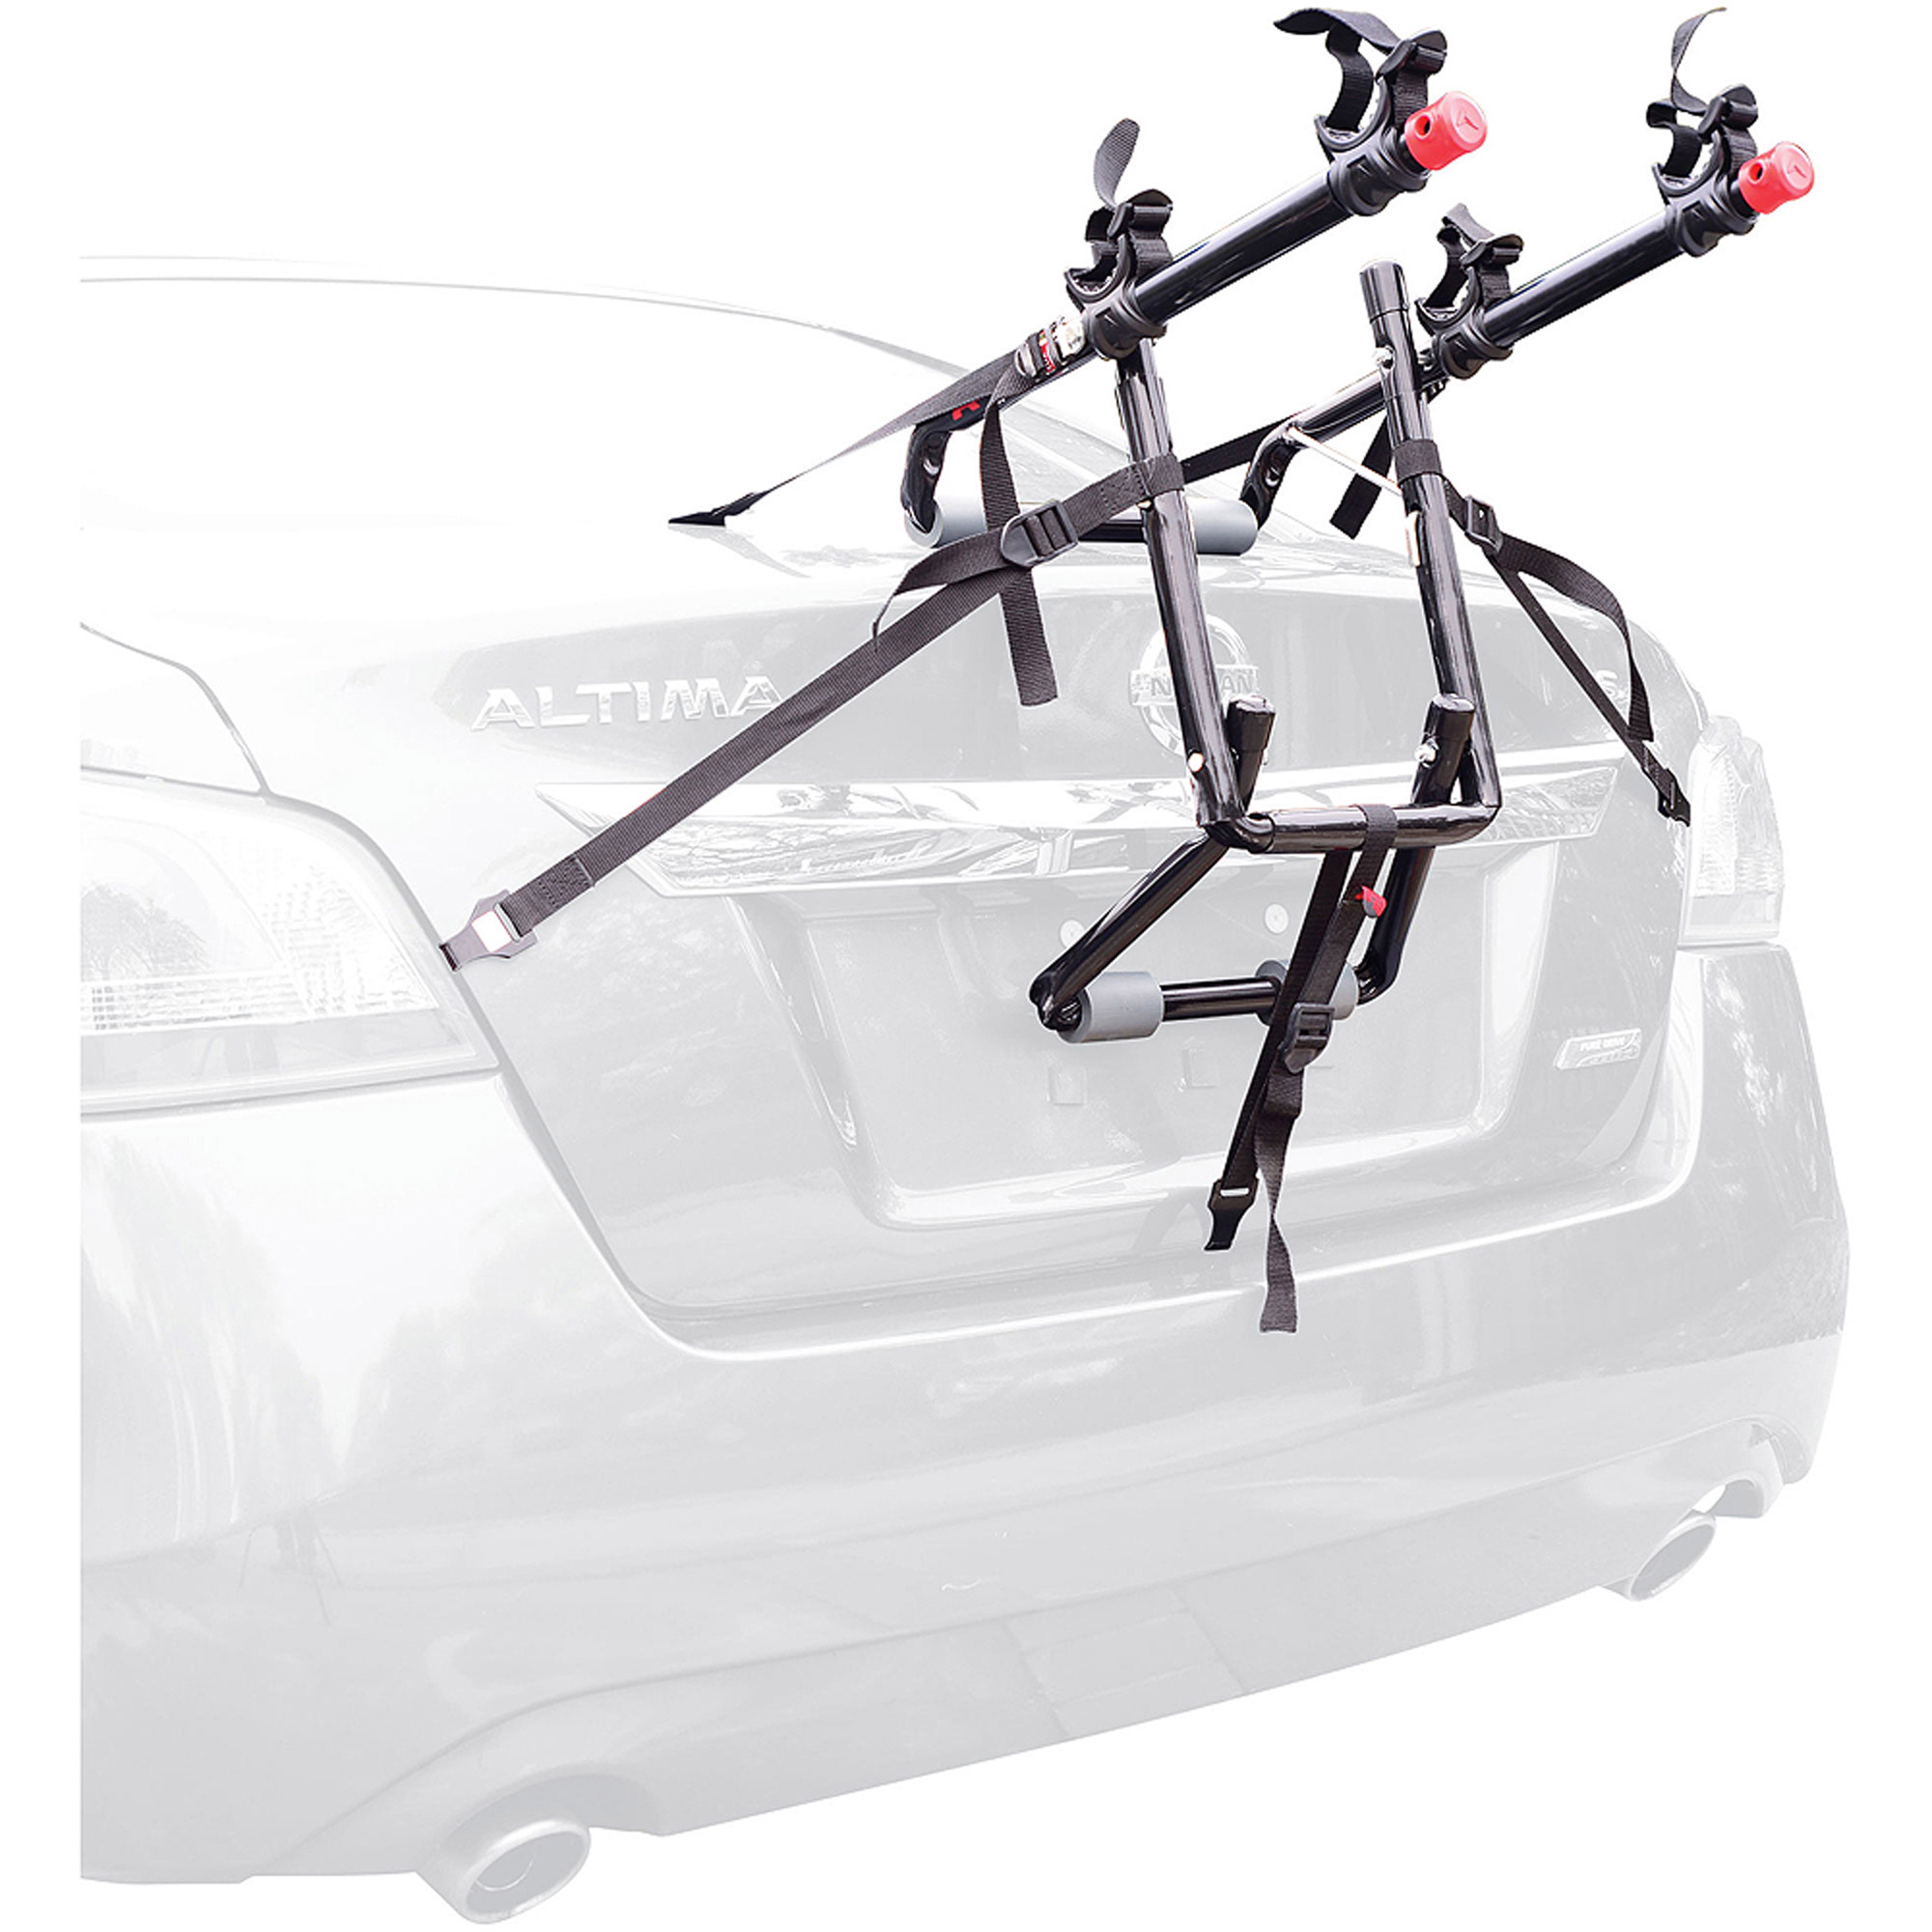 2 Car Garage Bike Storage Allen Sports Deluxe 2 Bicycle Trunk Mounted Bike Rack Carrier 102dn